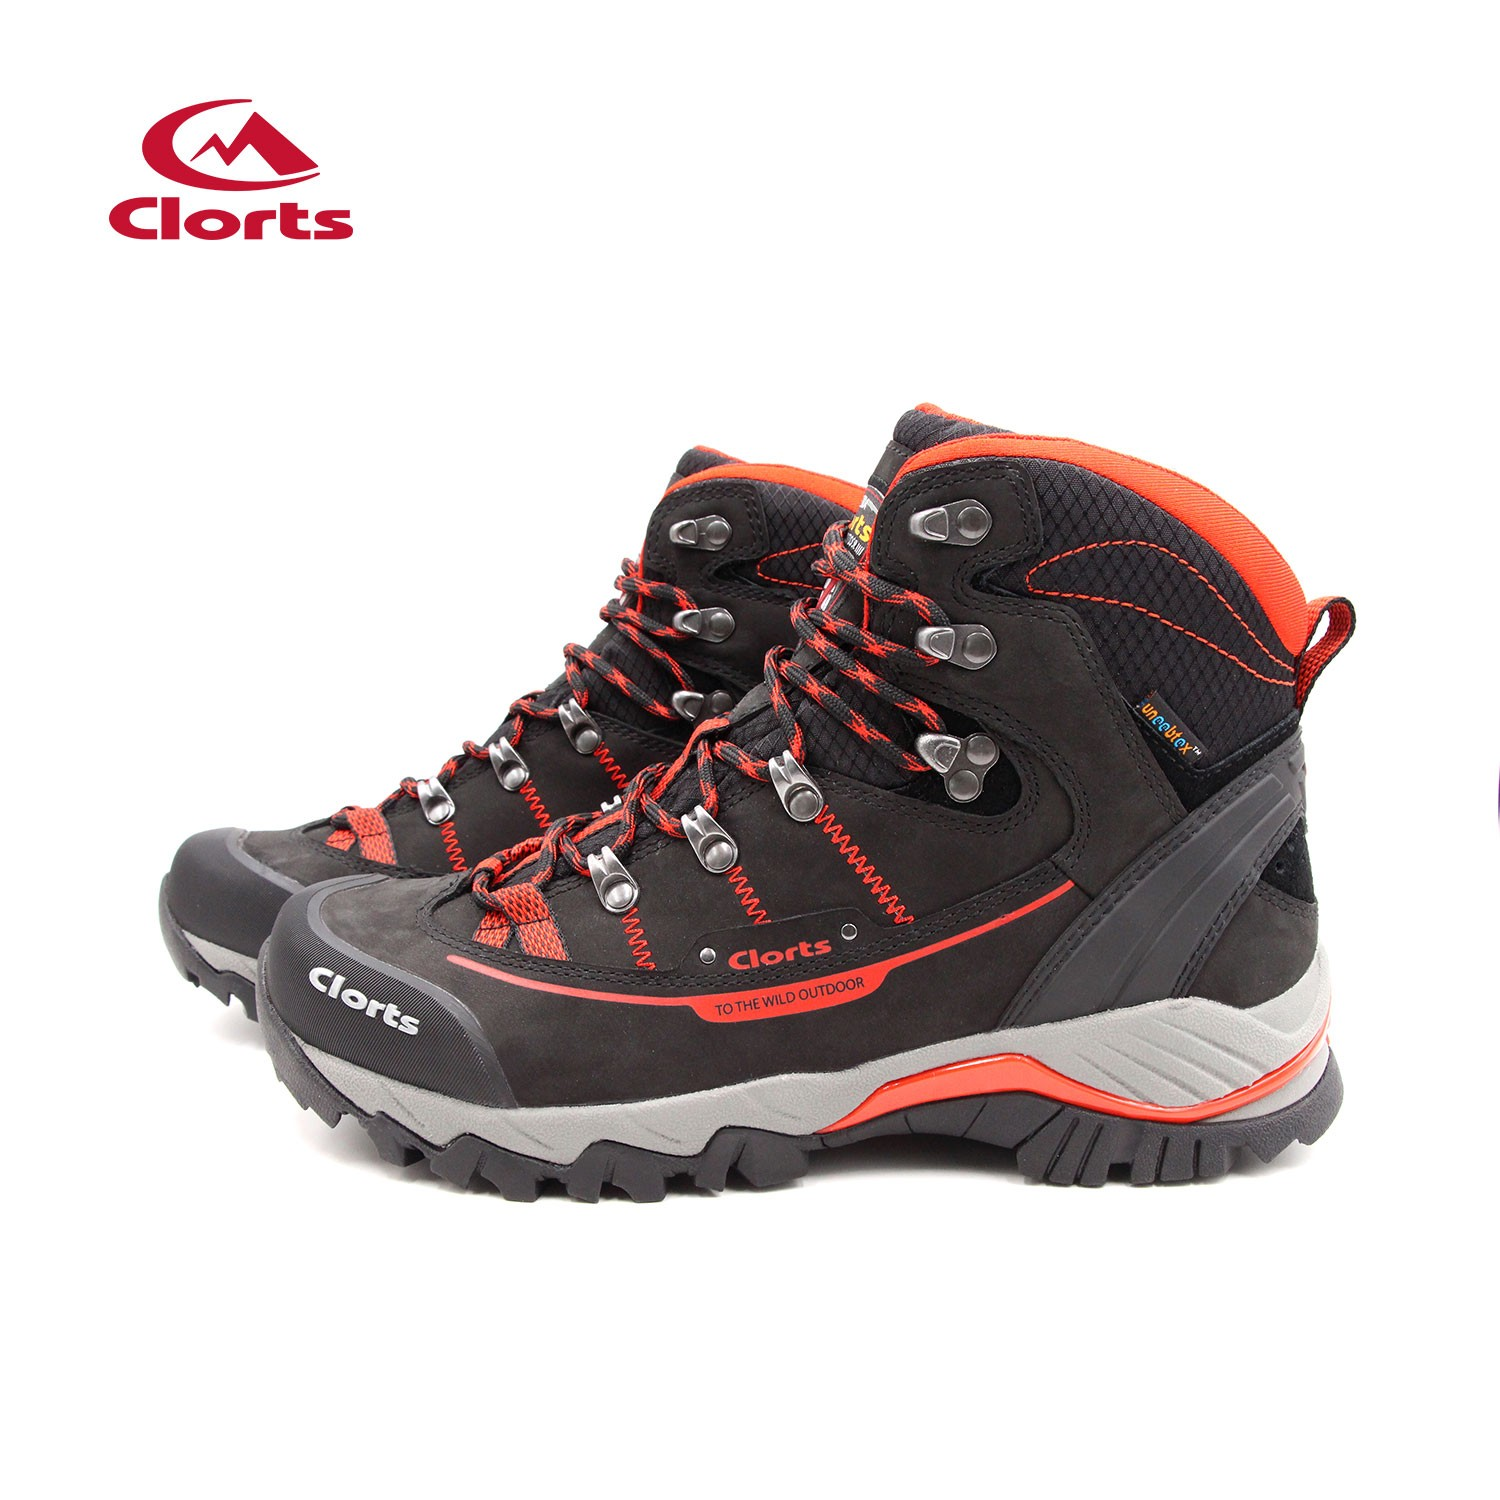 Clorts Mens Full-Grain Outdoor Waterproof Trekking Boots Red Manufacturers, Clorts Mens Full-Grain Outdoor Waterproof Trekking Boots Red Factory, Supply Clorts Mens Full-Grain Outdoor Waterproof Trekking Boots Red